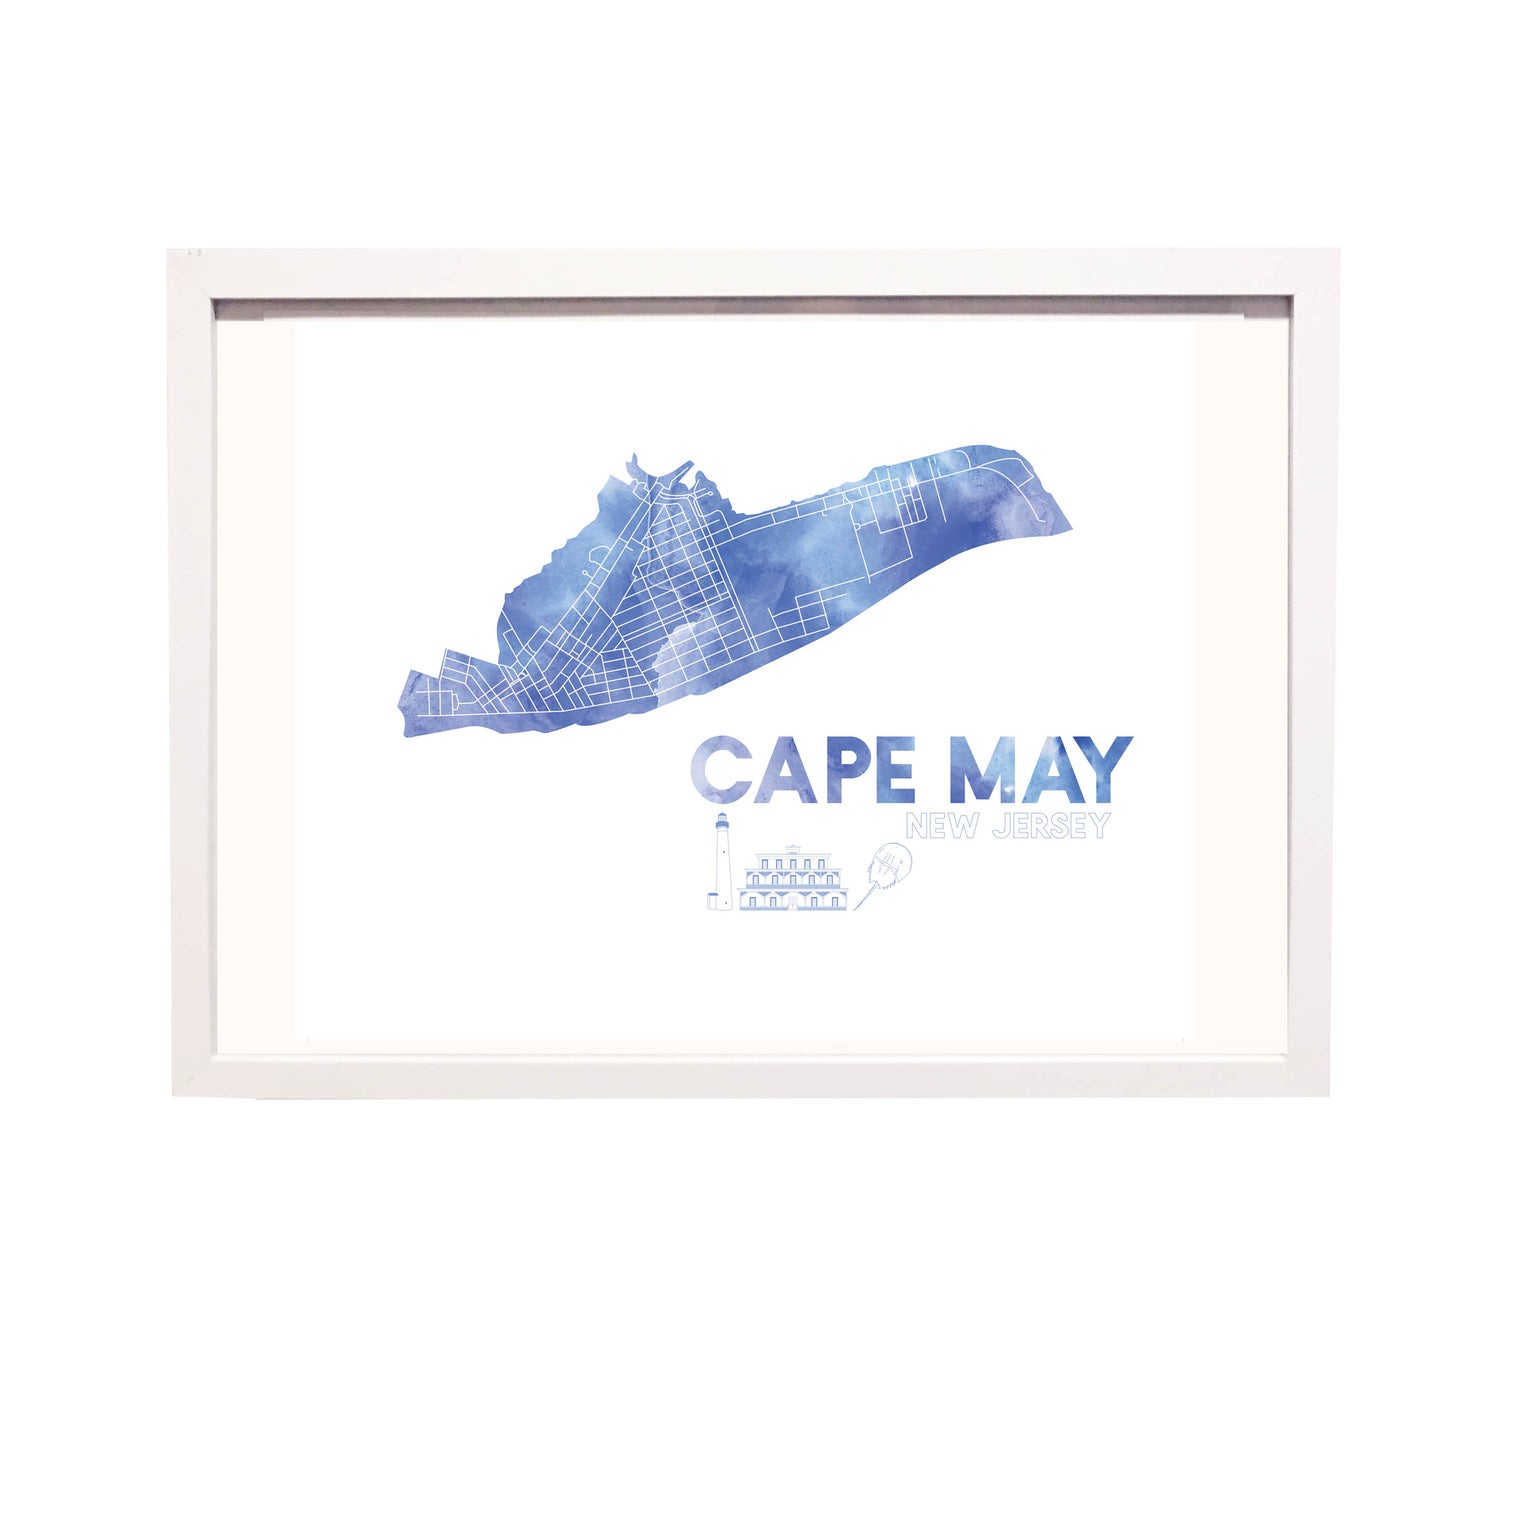 Image of Cape May NJ Art Print